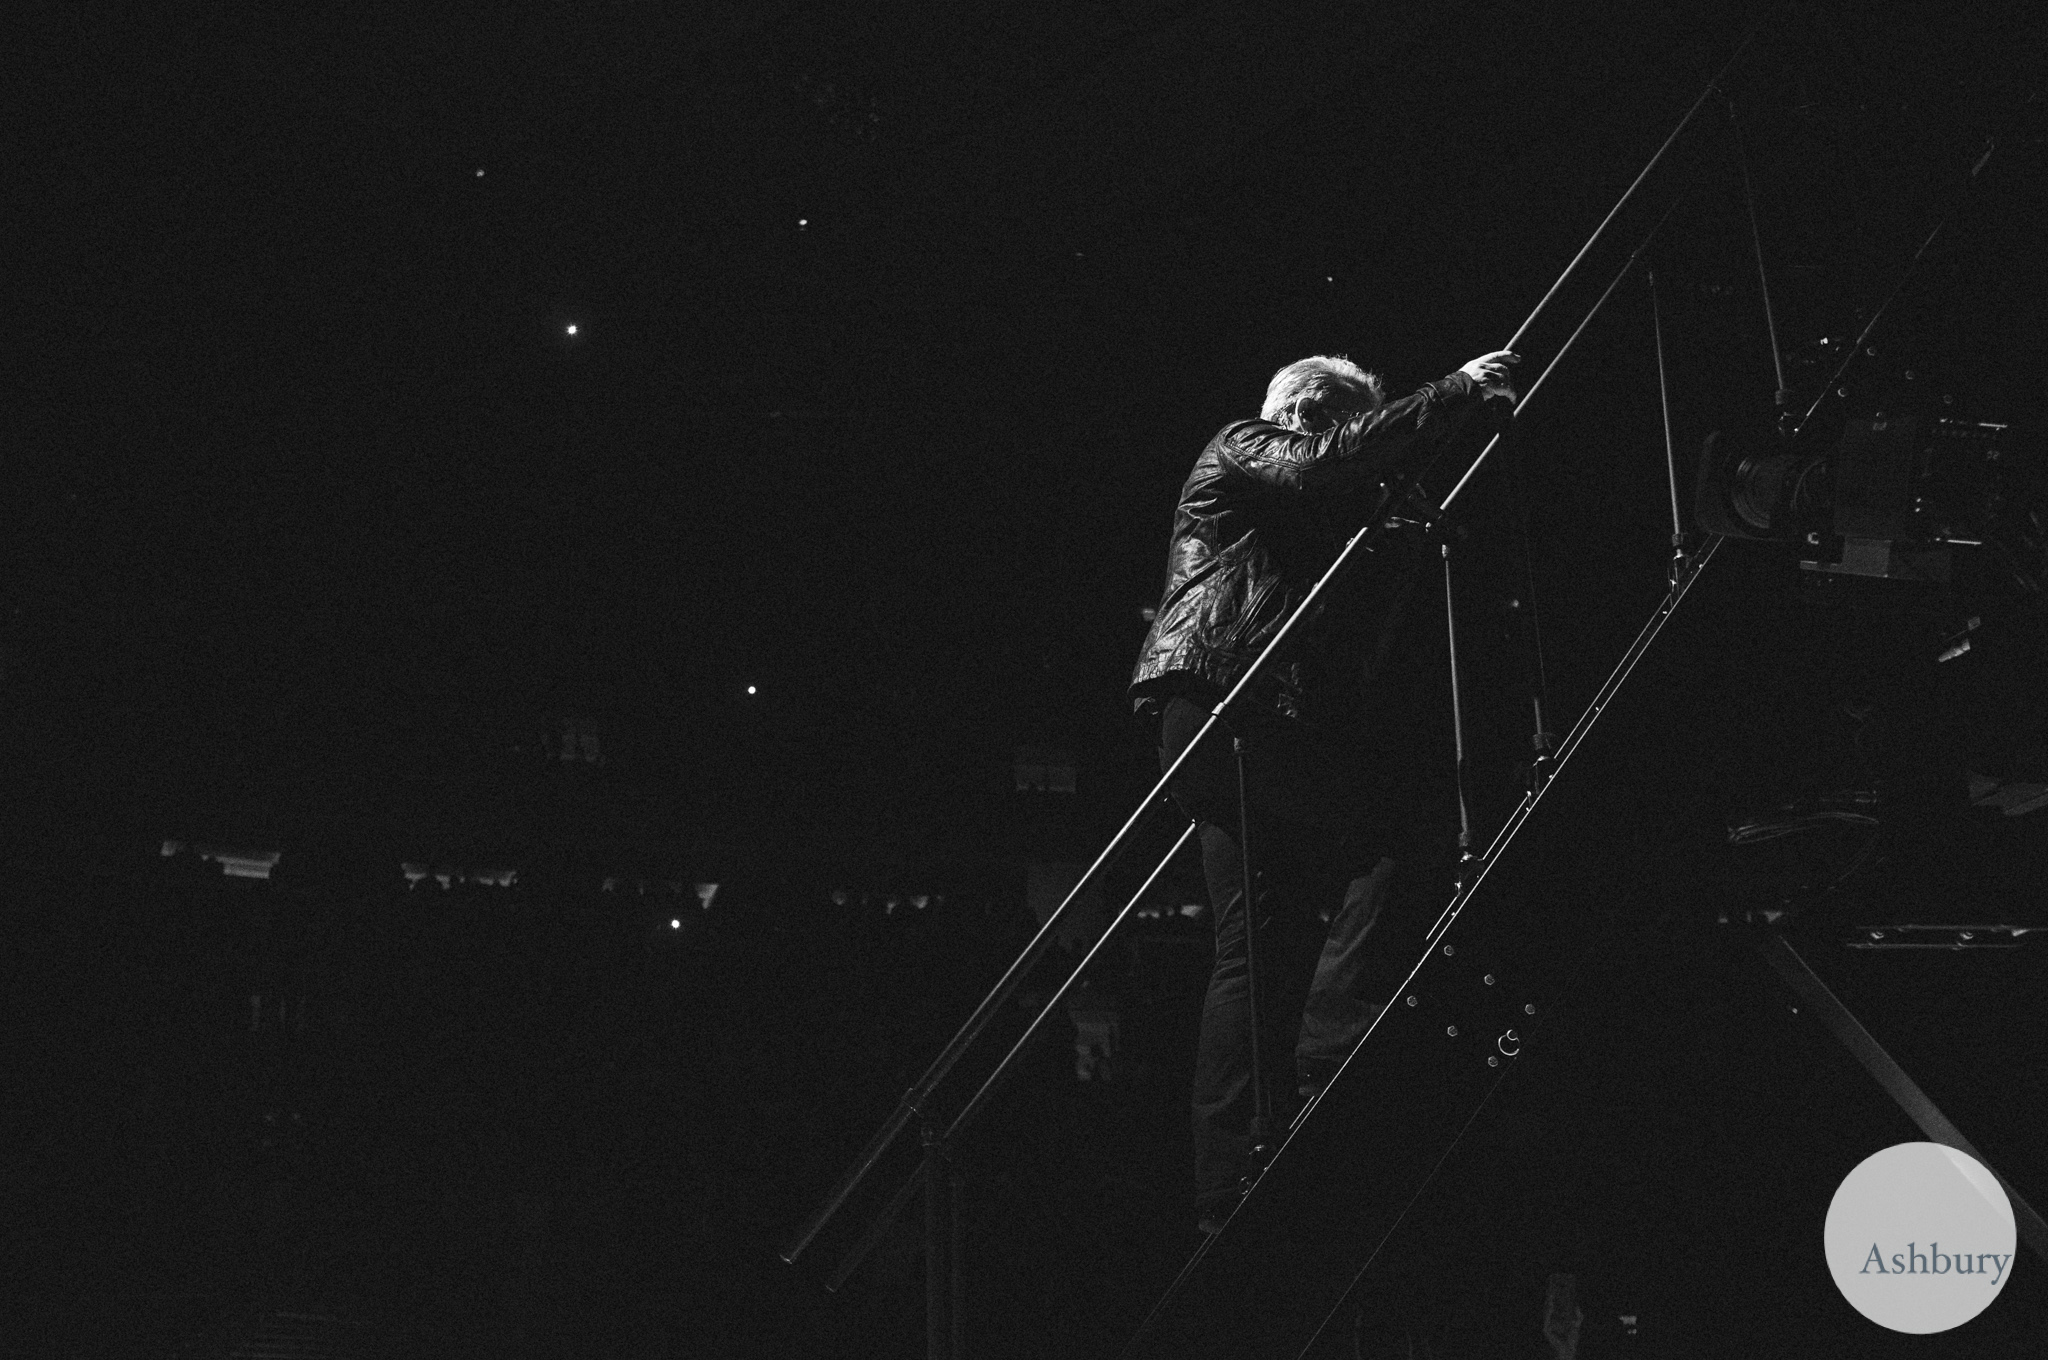 bono of U2 u2ie tour MSG 0719 fuji x100